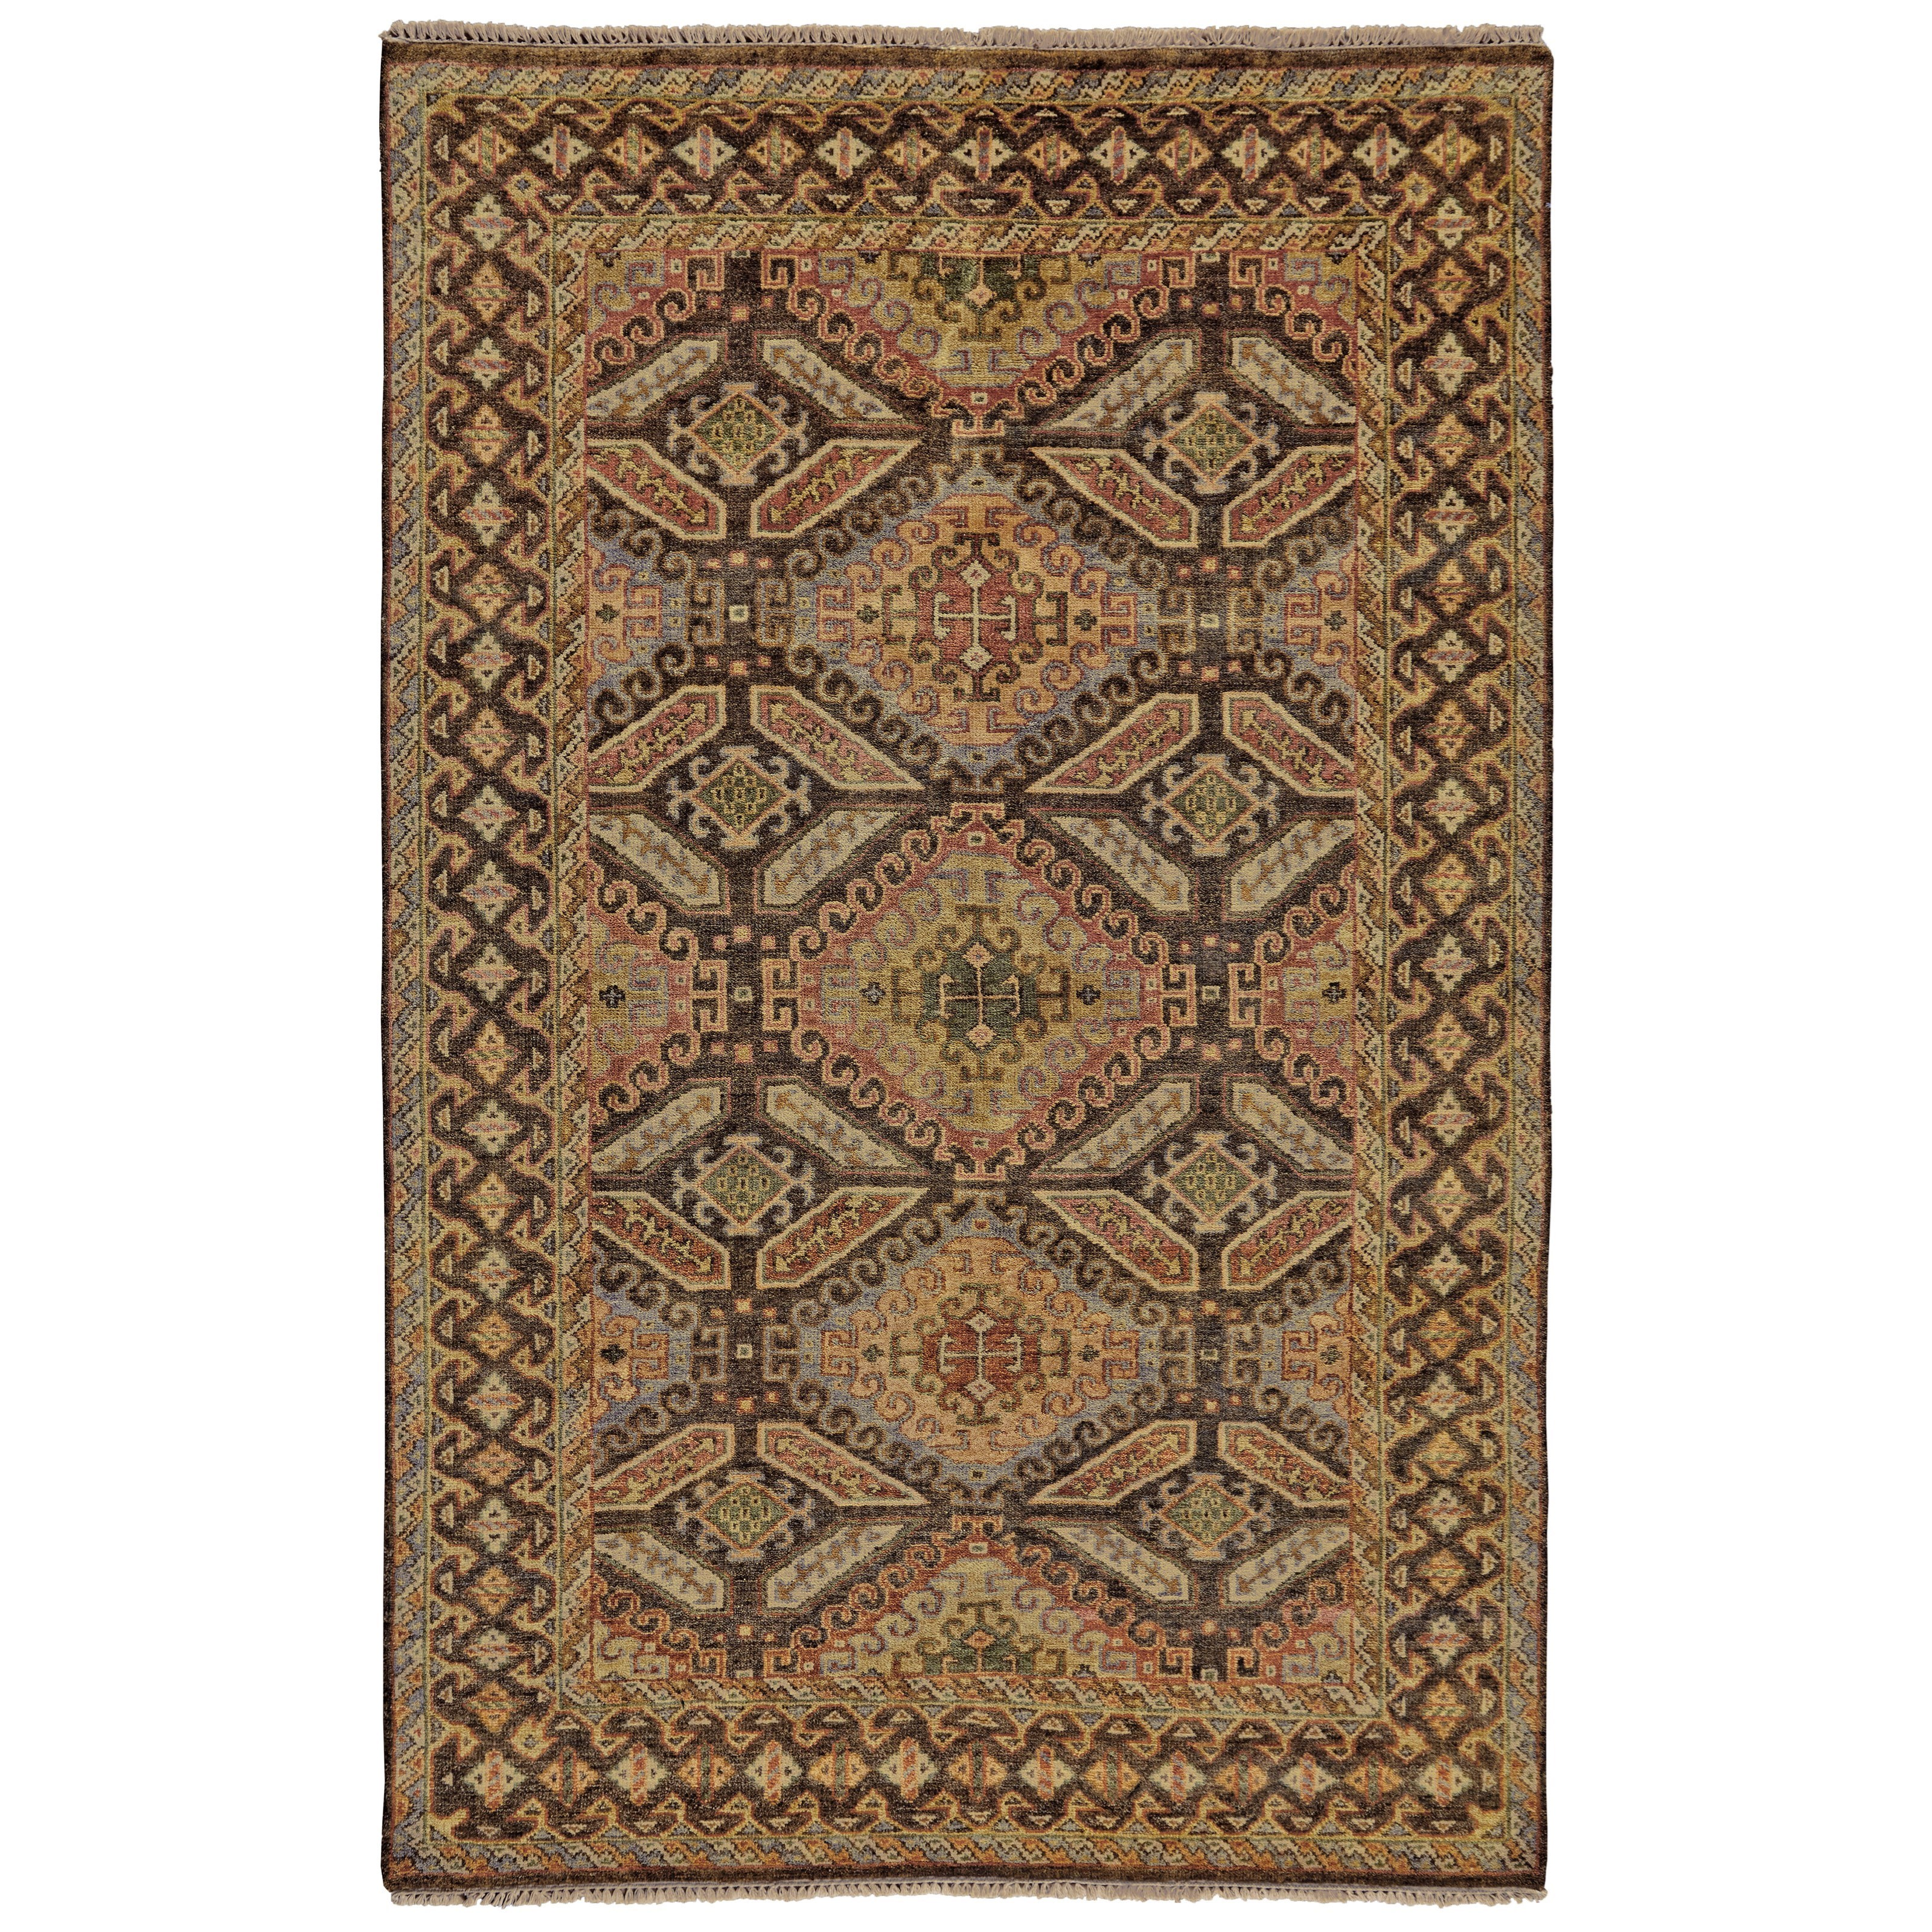 """Ashi Brown/Brown 8'-6"""" x 11'-6"""" Area Rug by Feizy Rugs at Sprintz Furniture"""